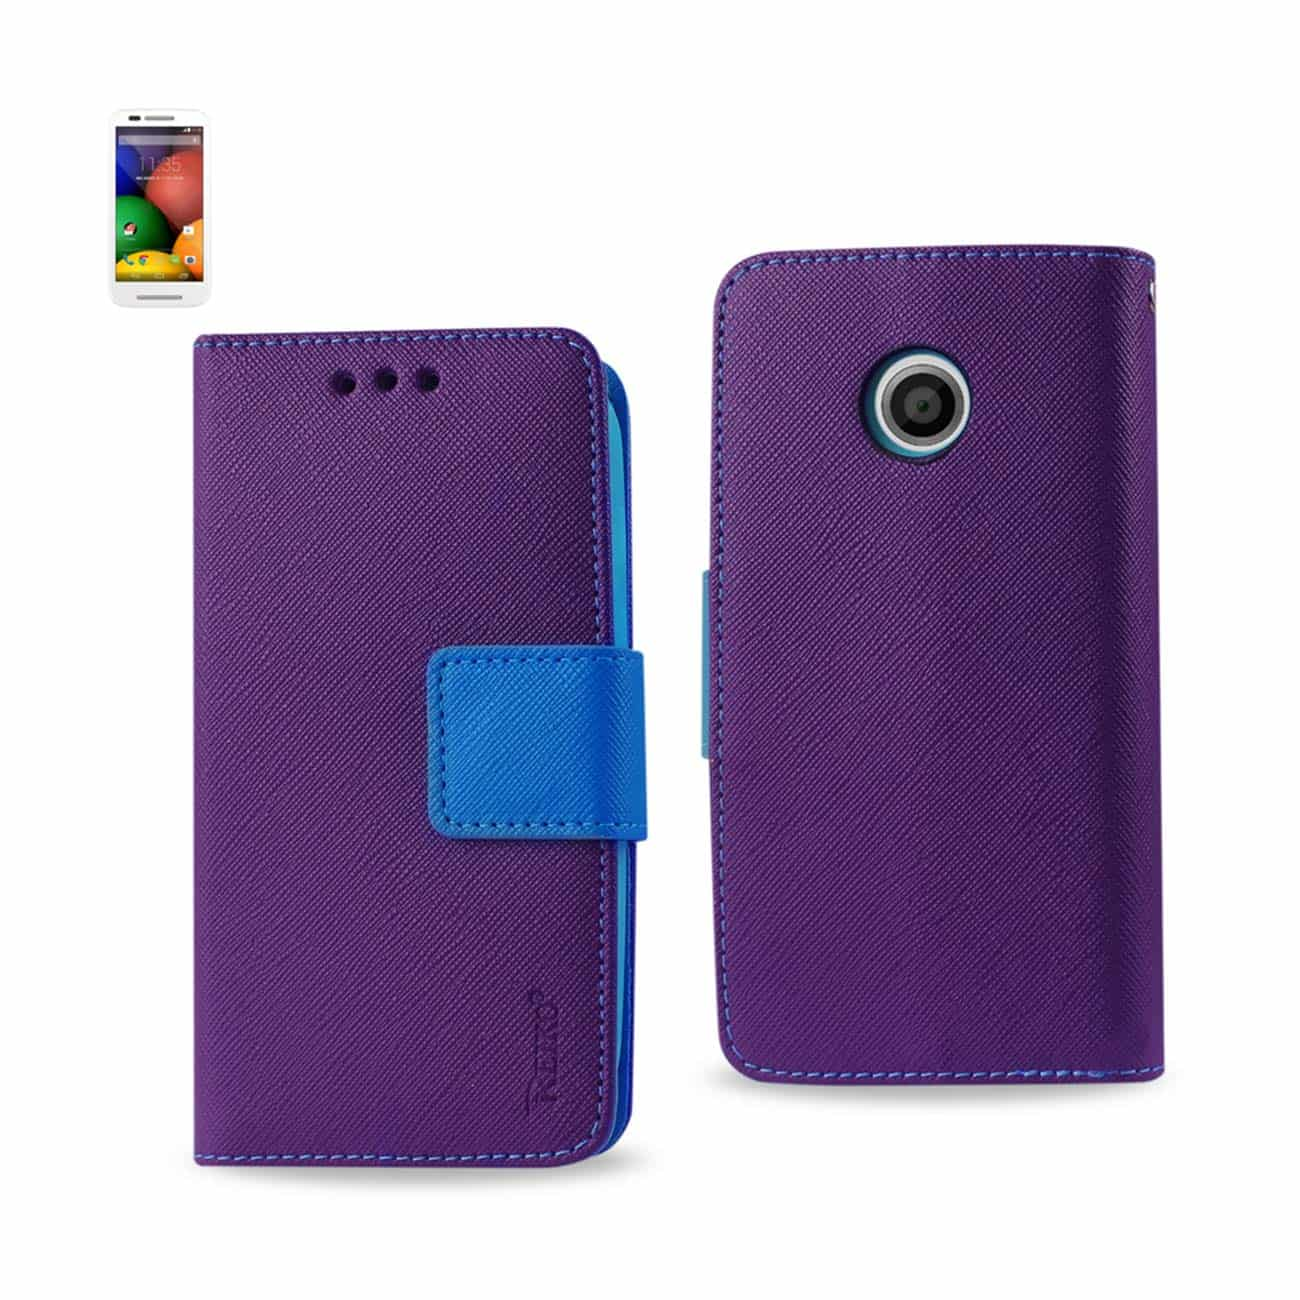 MOTOROLA MOTO E 3-IN-1 WALLET CASE IN PURPLE